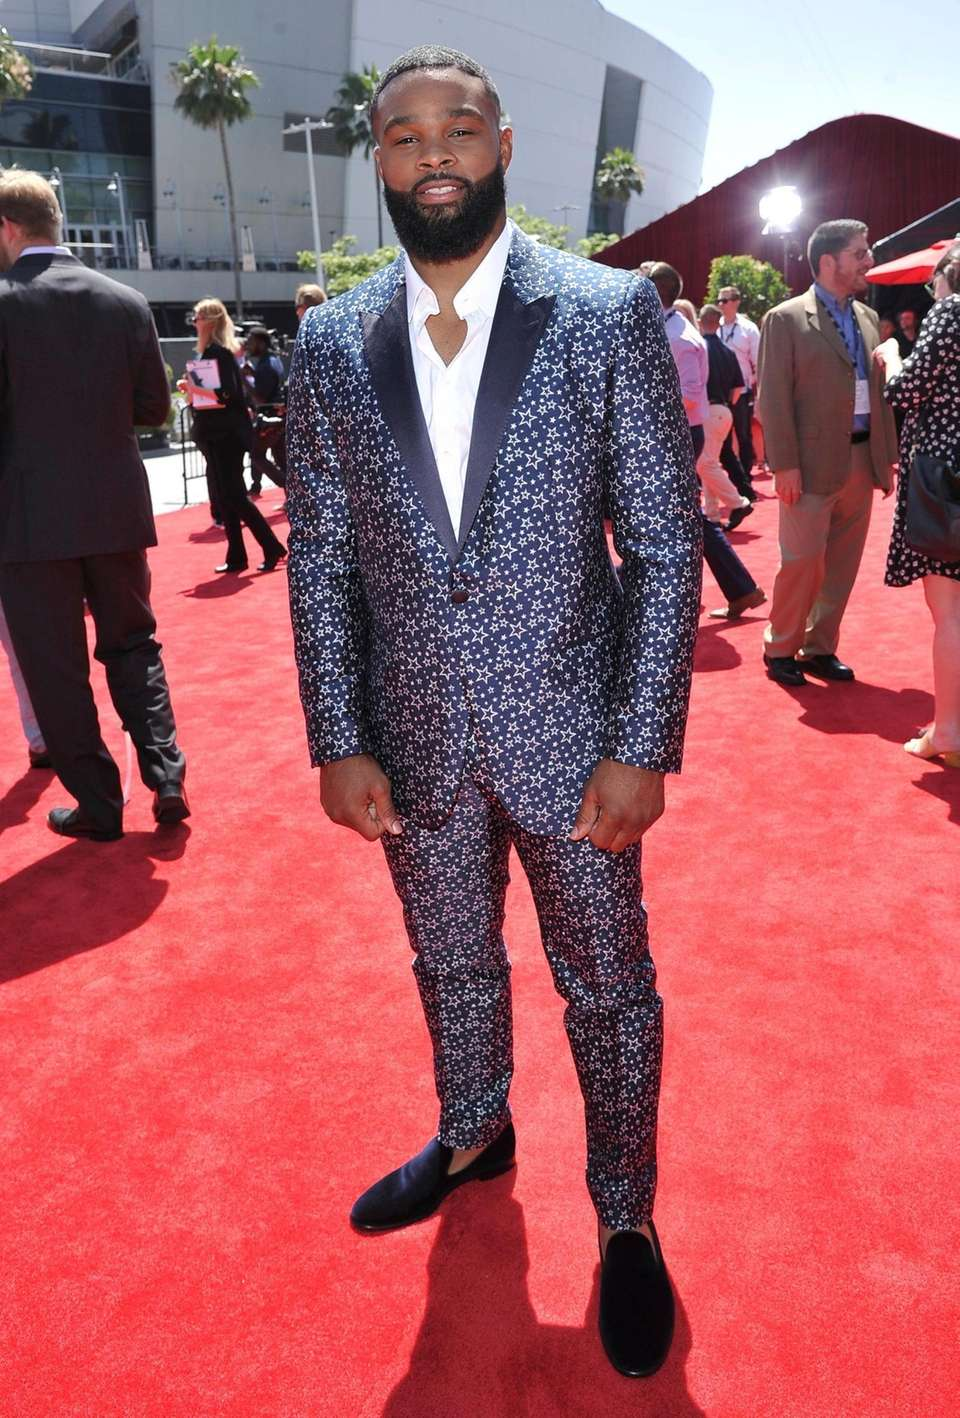 UFC fighter Tyron Woodley arrives at the ESPY